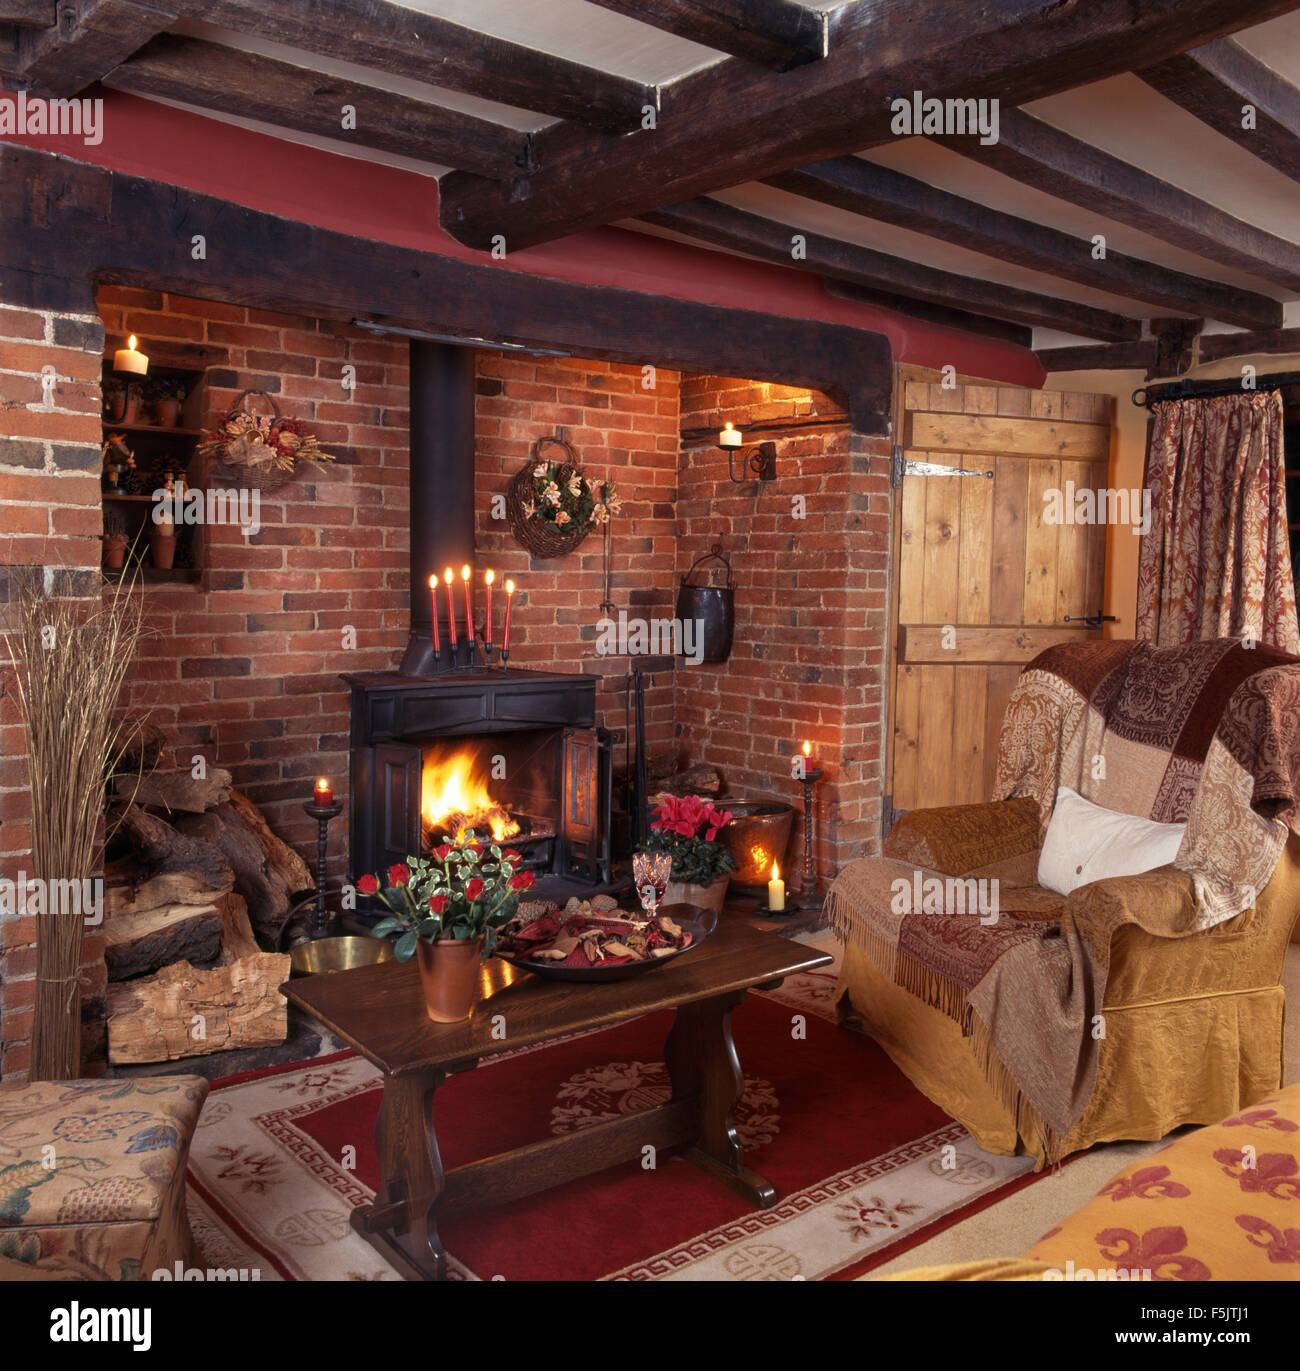 Wood Burning Stove In Inglenook Fireplace In A Beamed